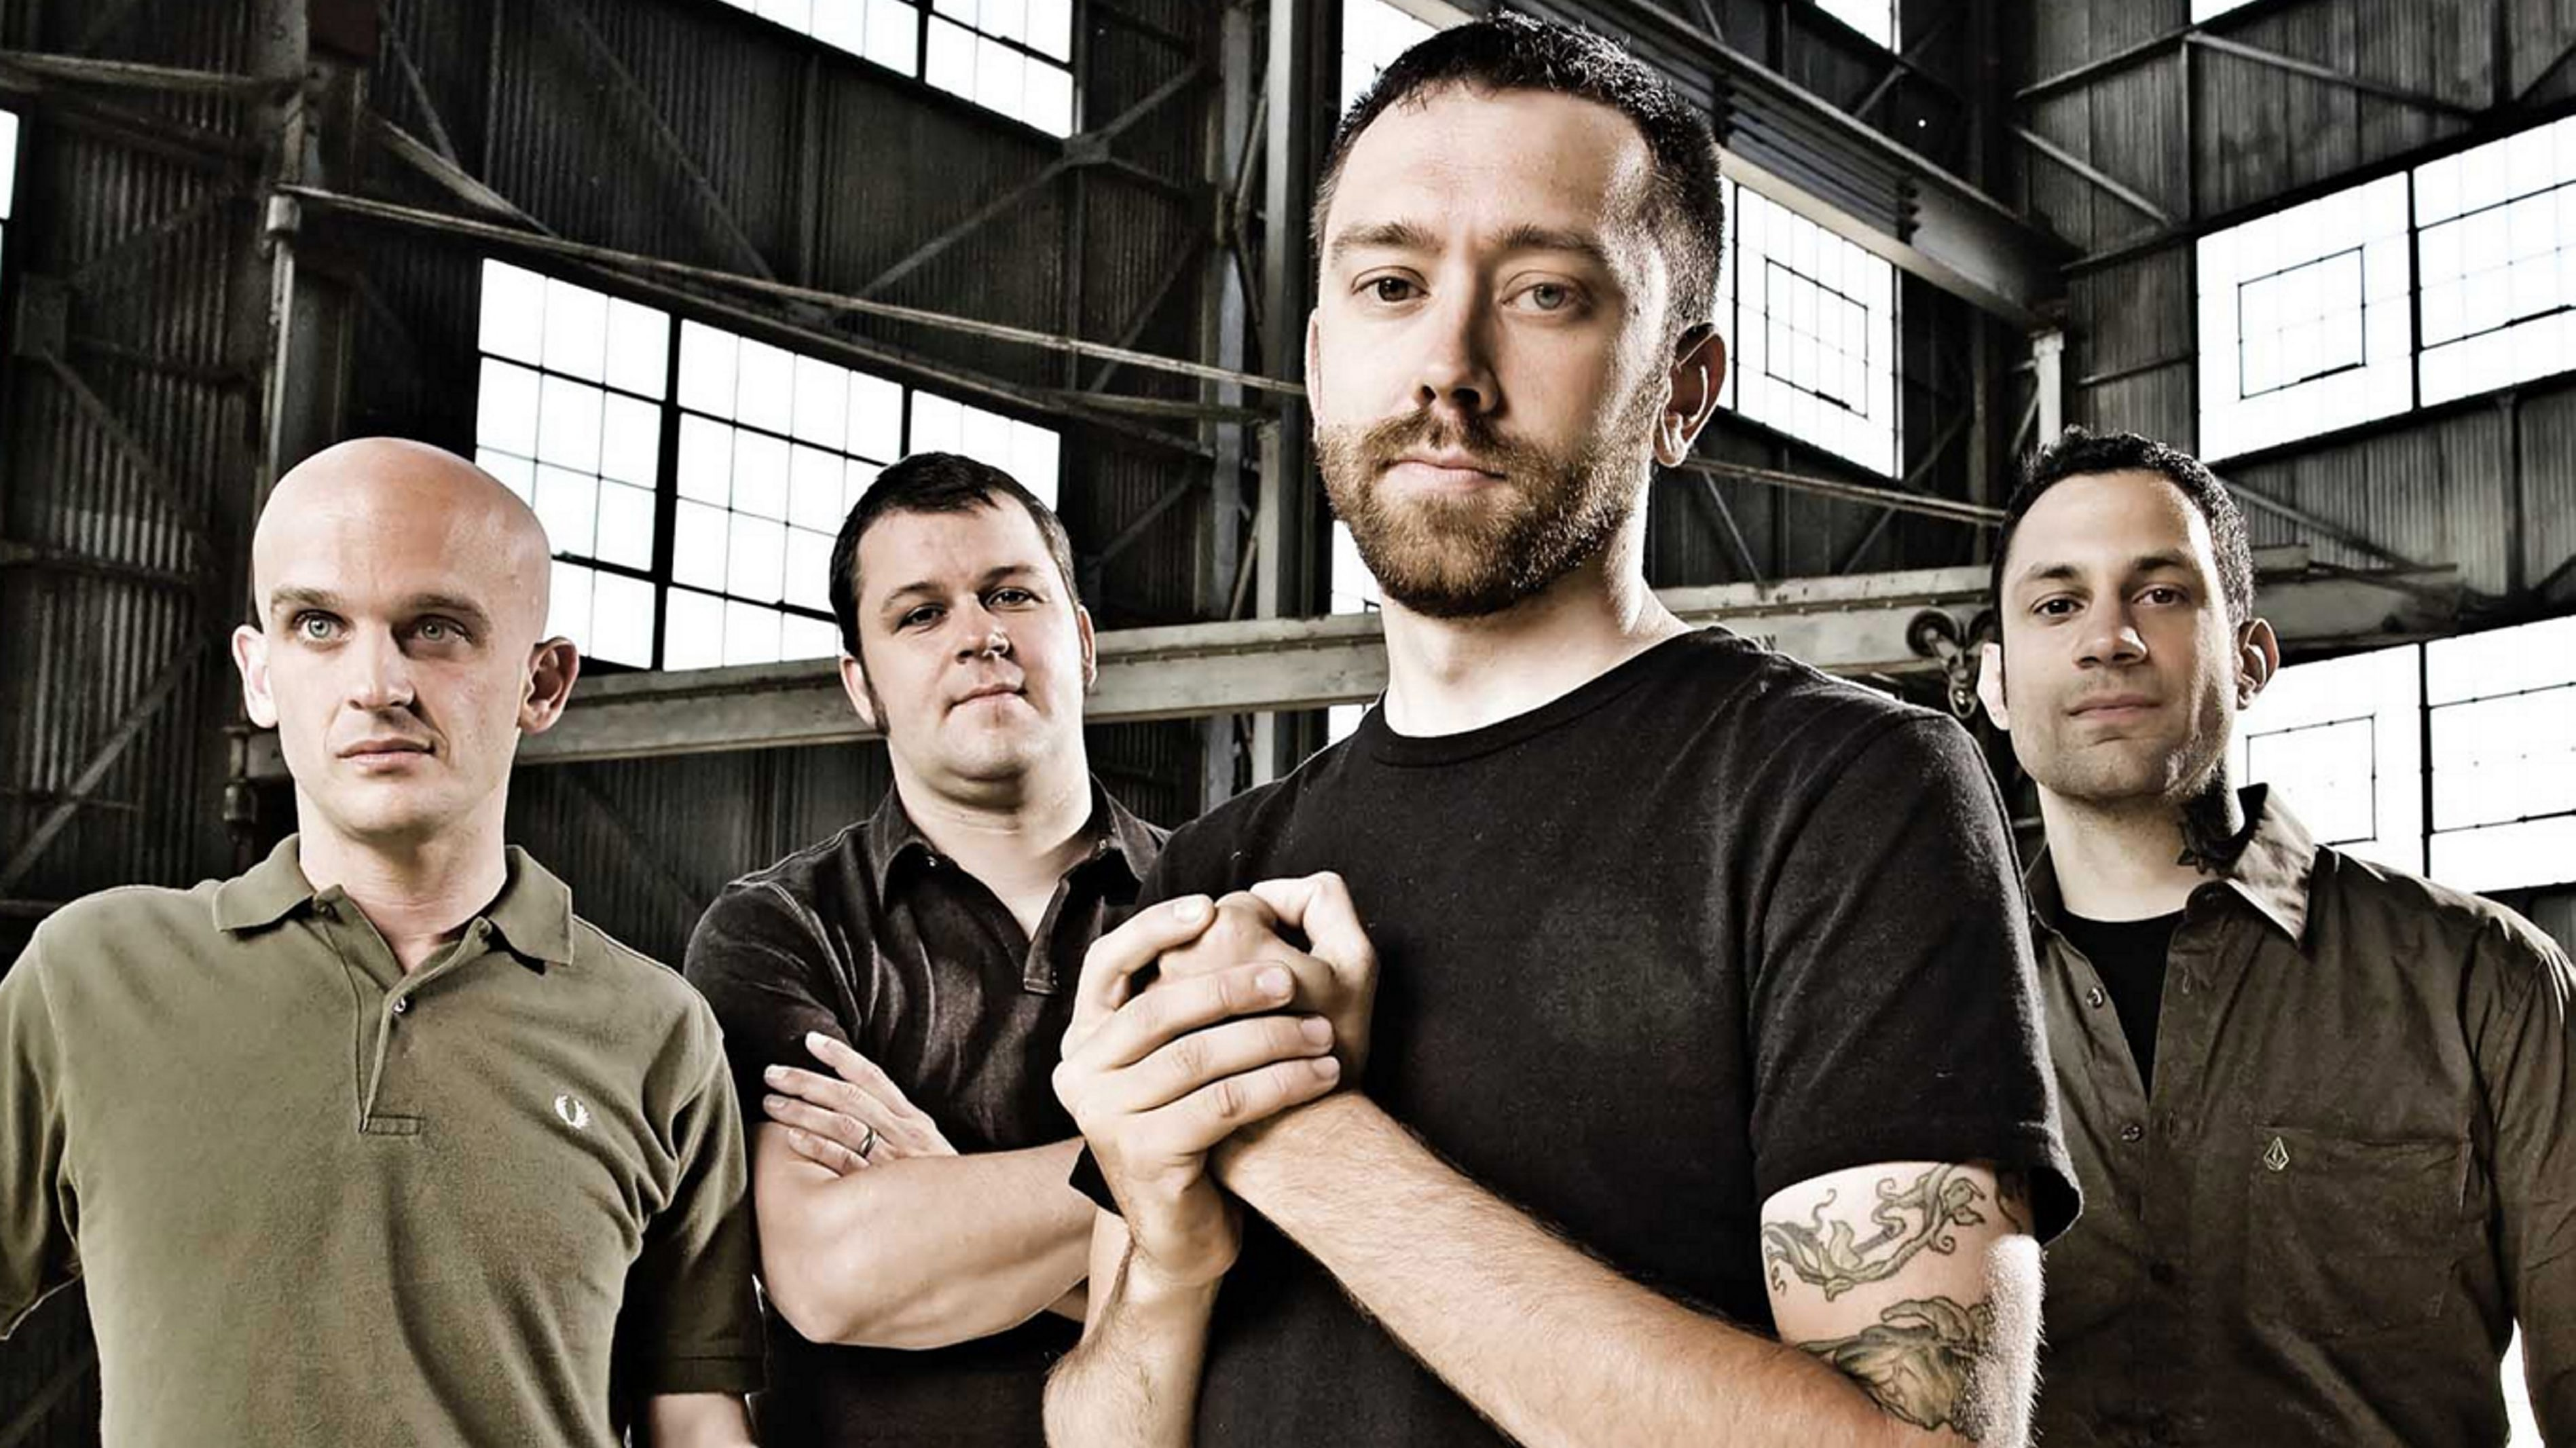 Rise Against performs at Edgefest on Sept. 12 at the Outer Harbor Concert Site.